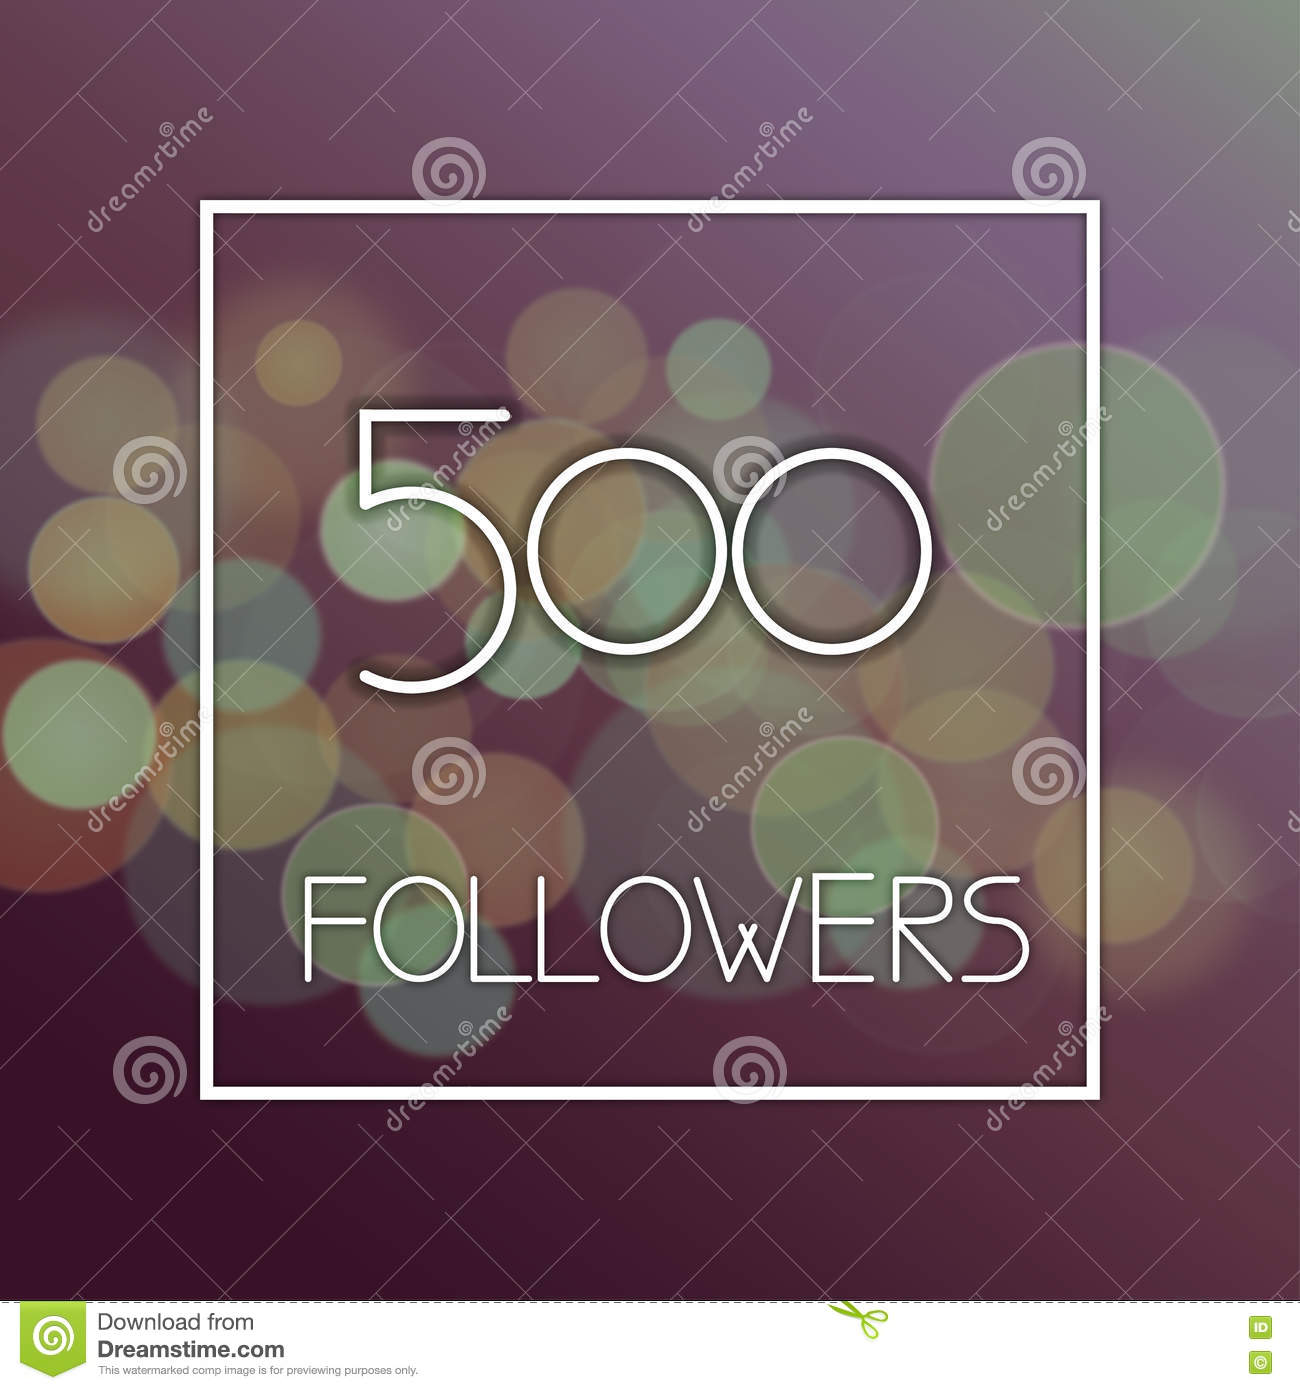 5000 follower celebration - 3 9